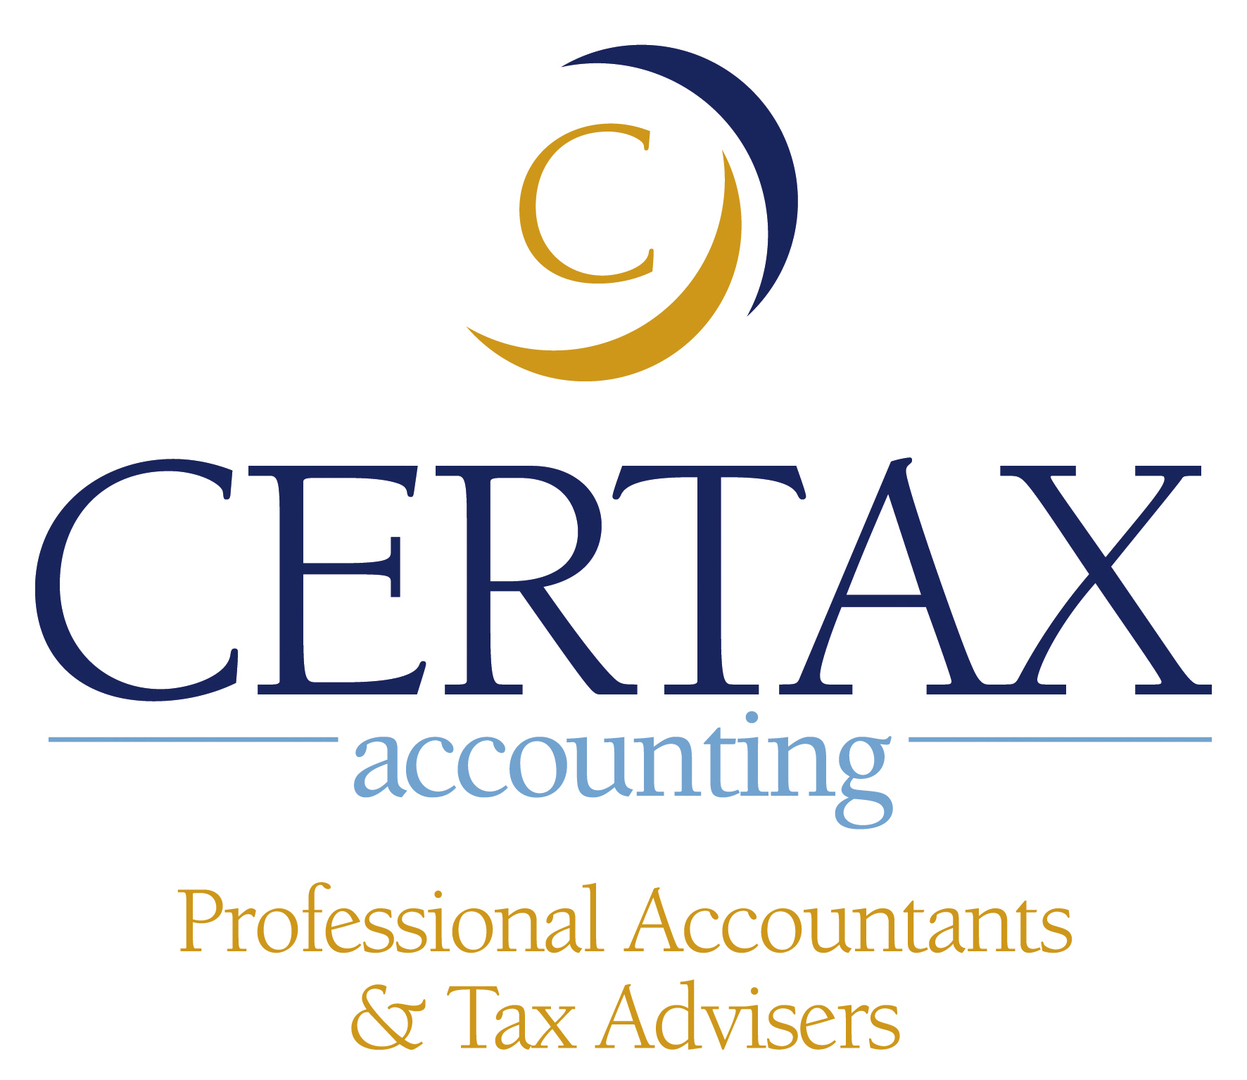 Certax Accounting